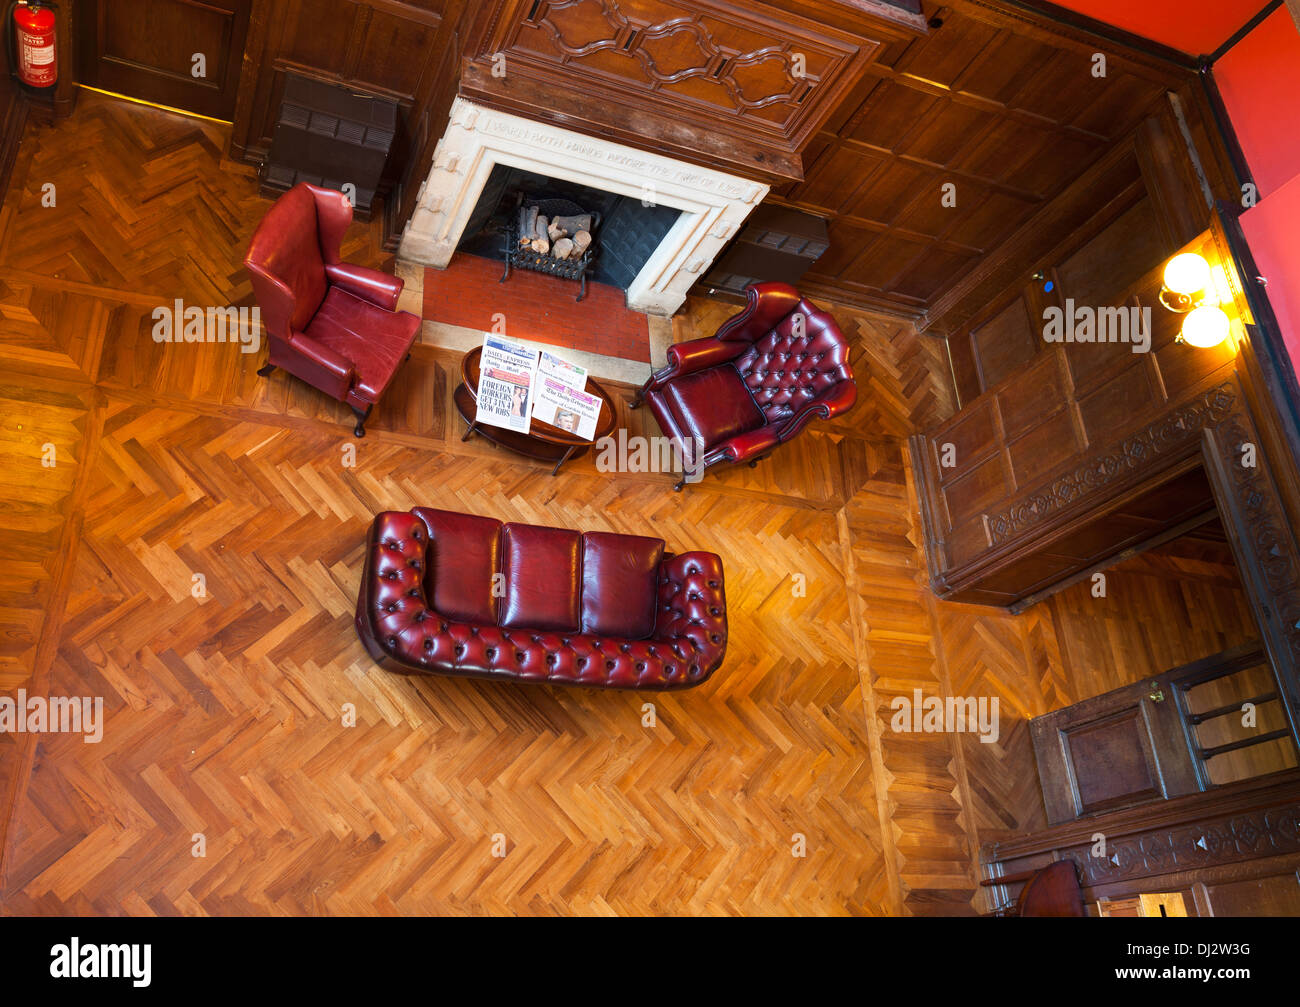 Looking down on hotel soft chairs and sofa with log fireplace and parquet flooring. - Stock Image